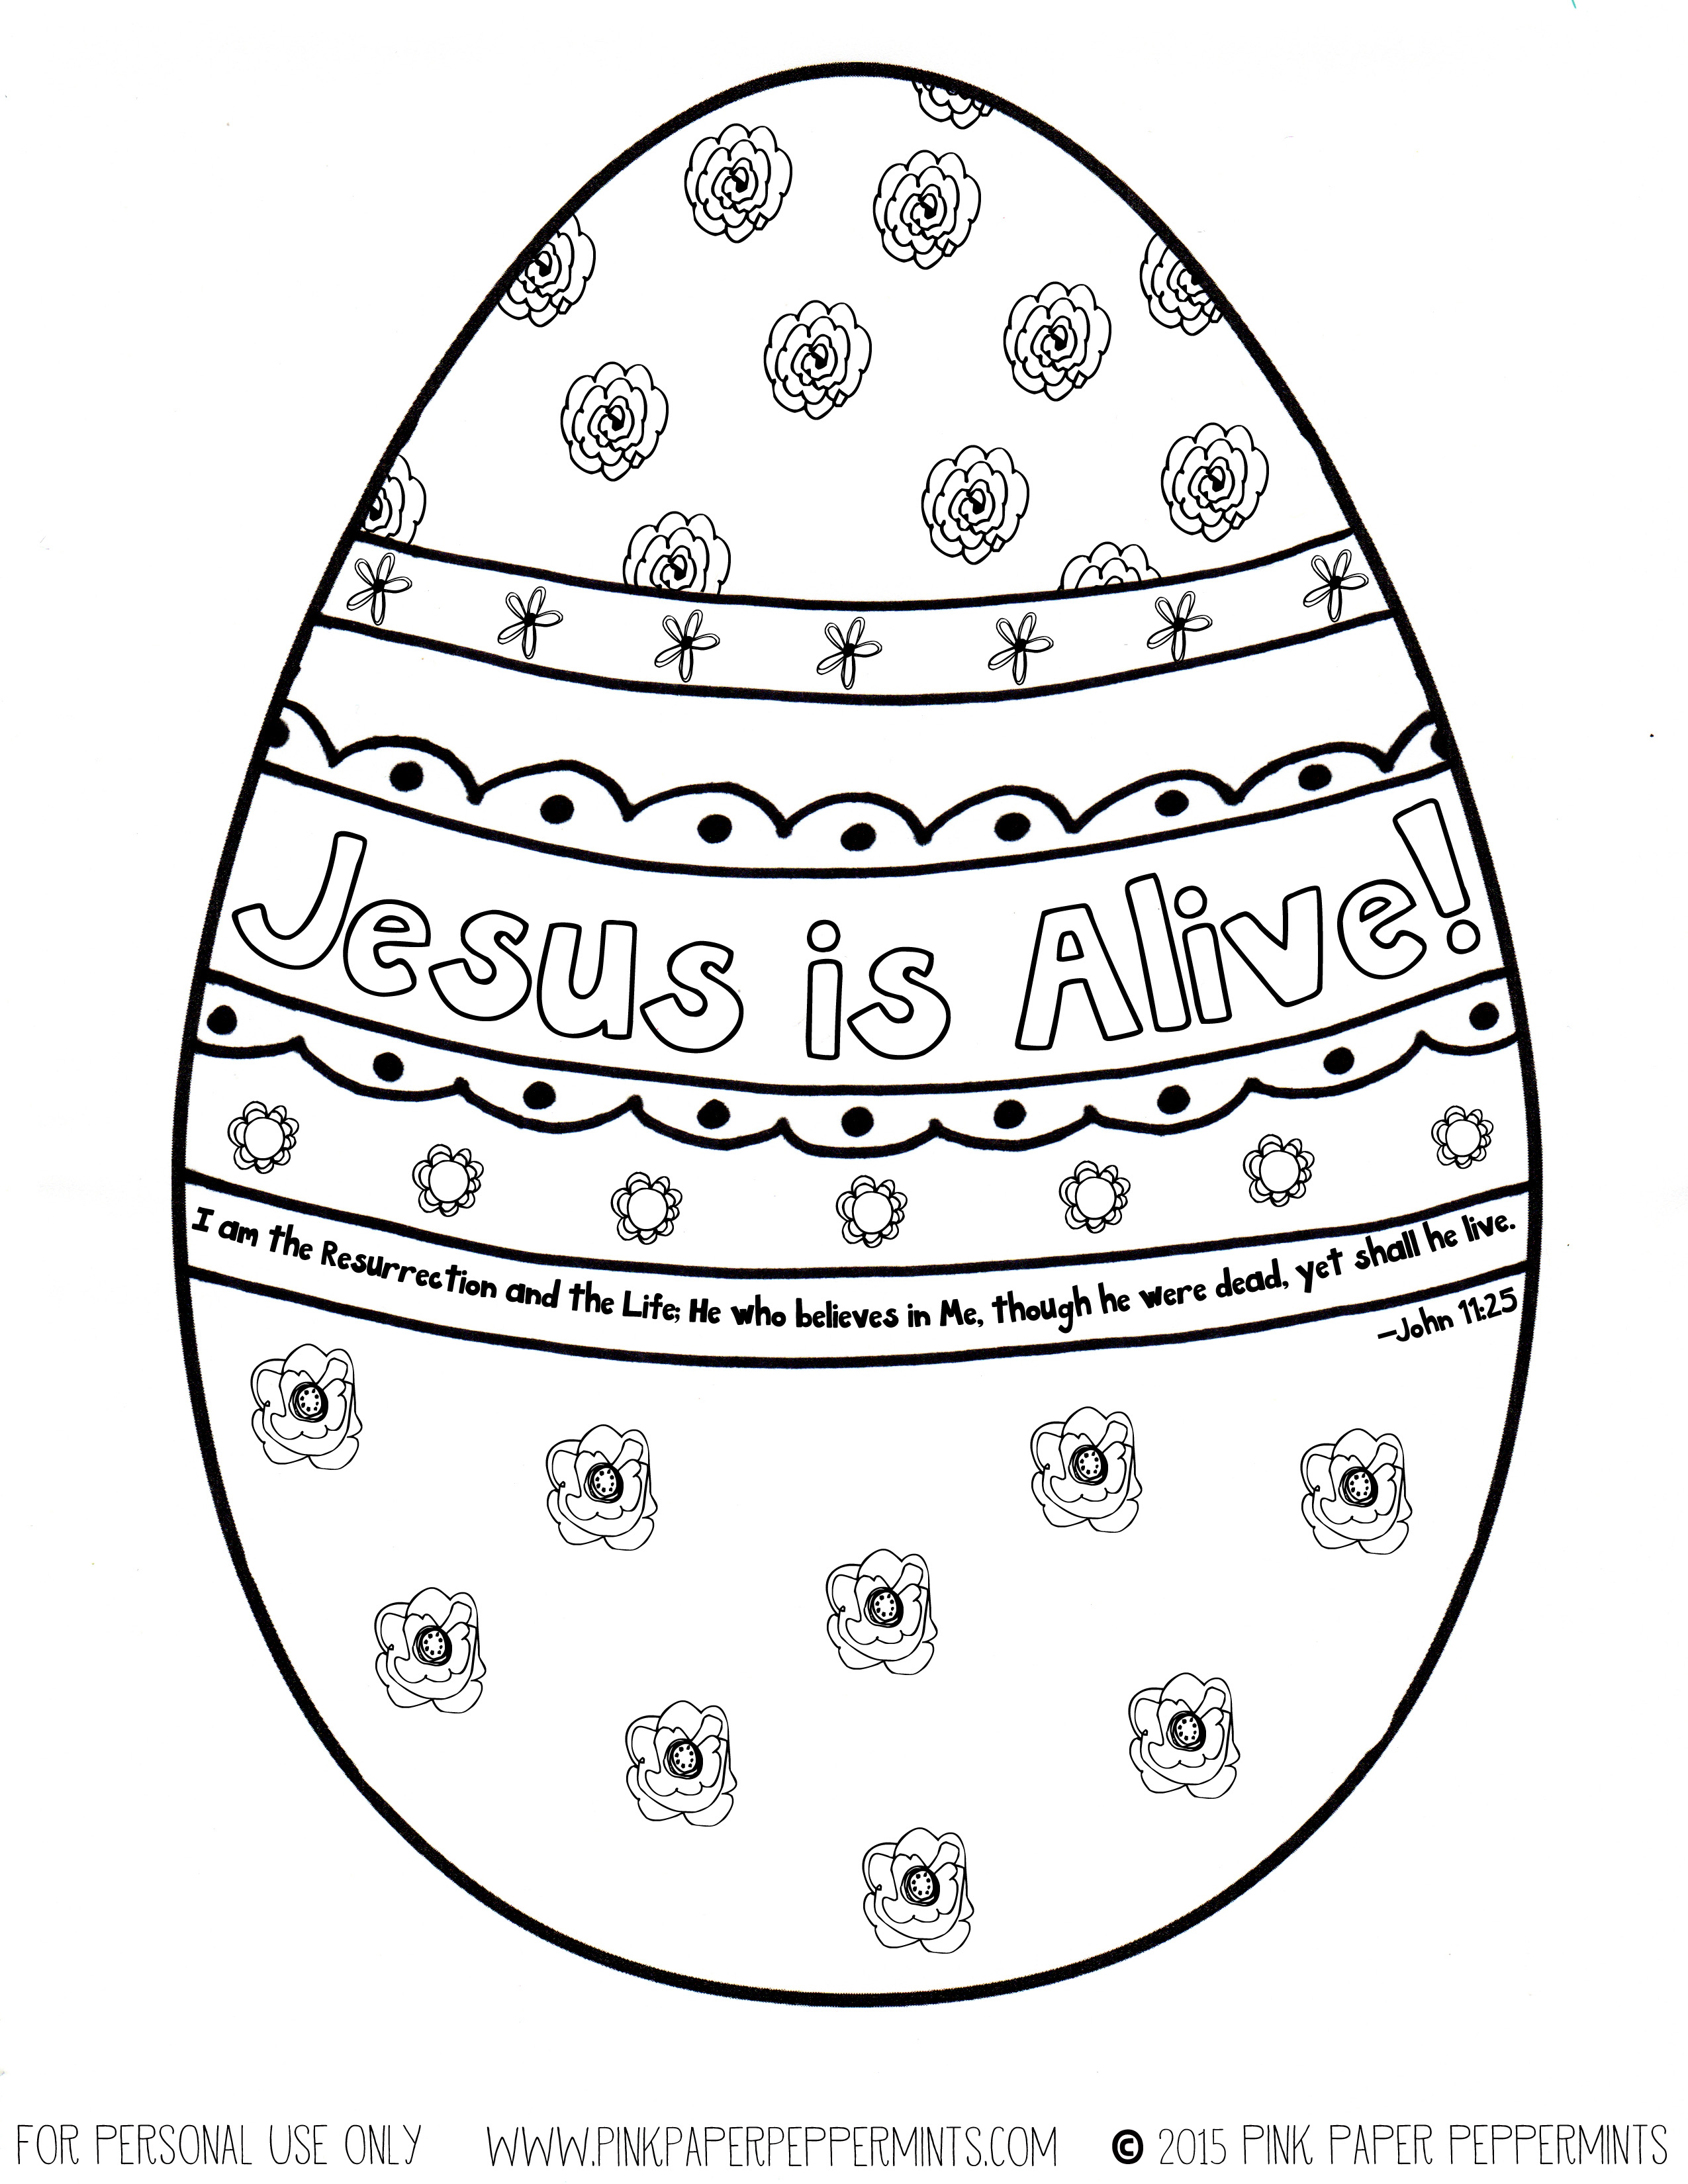 It's just a photo of Old Fashioned jesus is alive coloring page